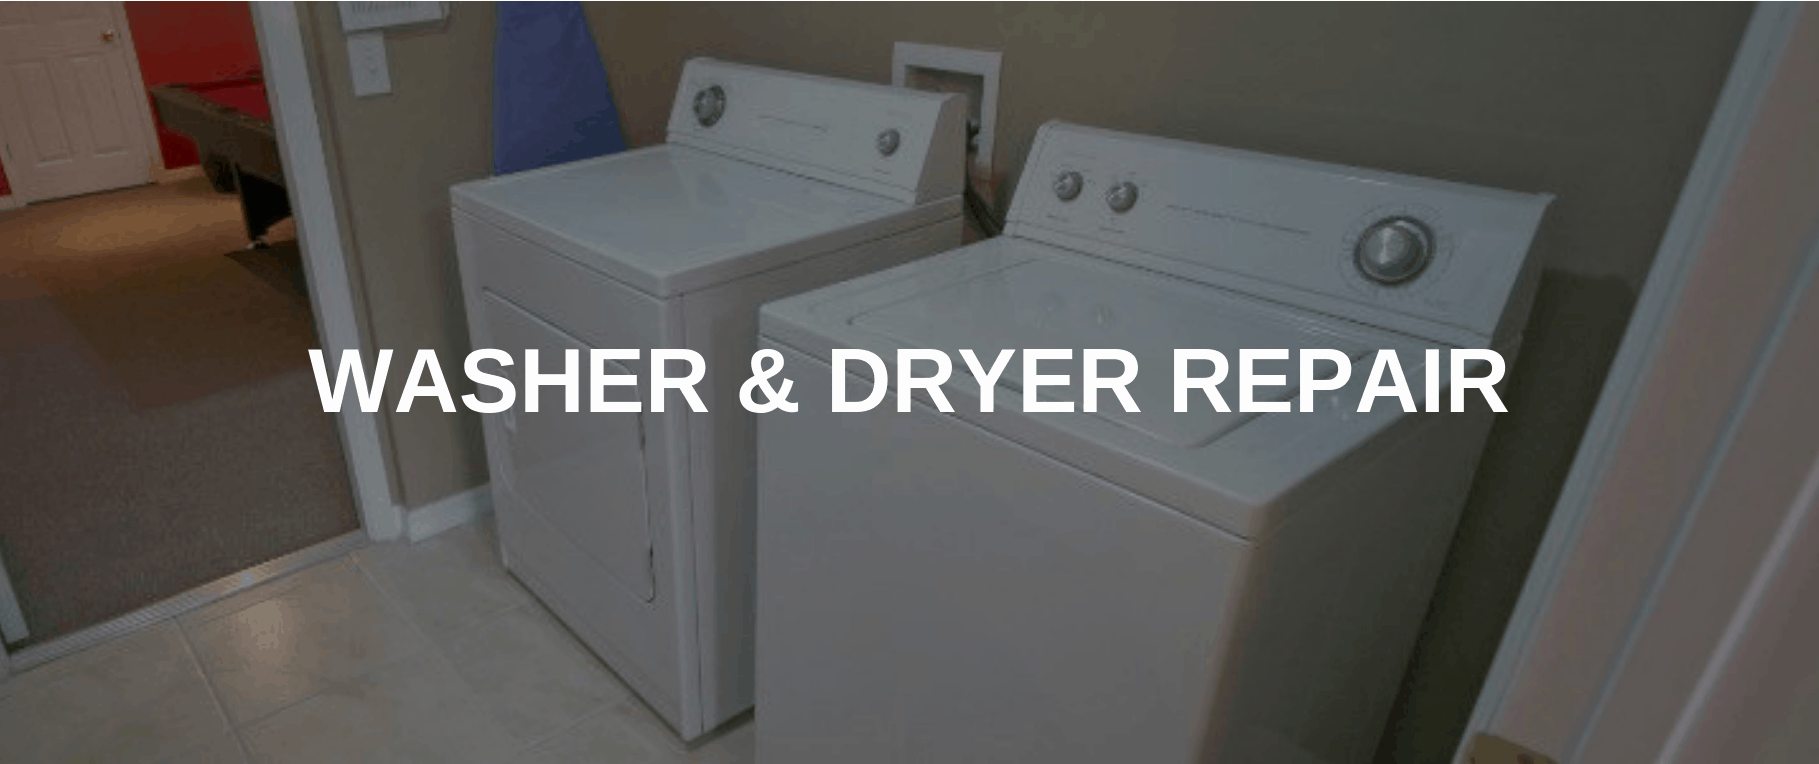 washing machine repair bellevue